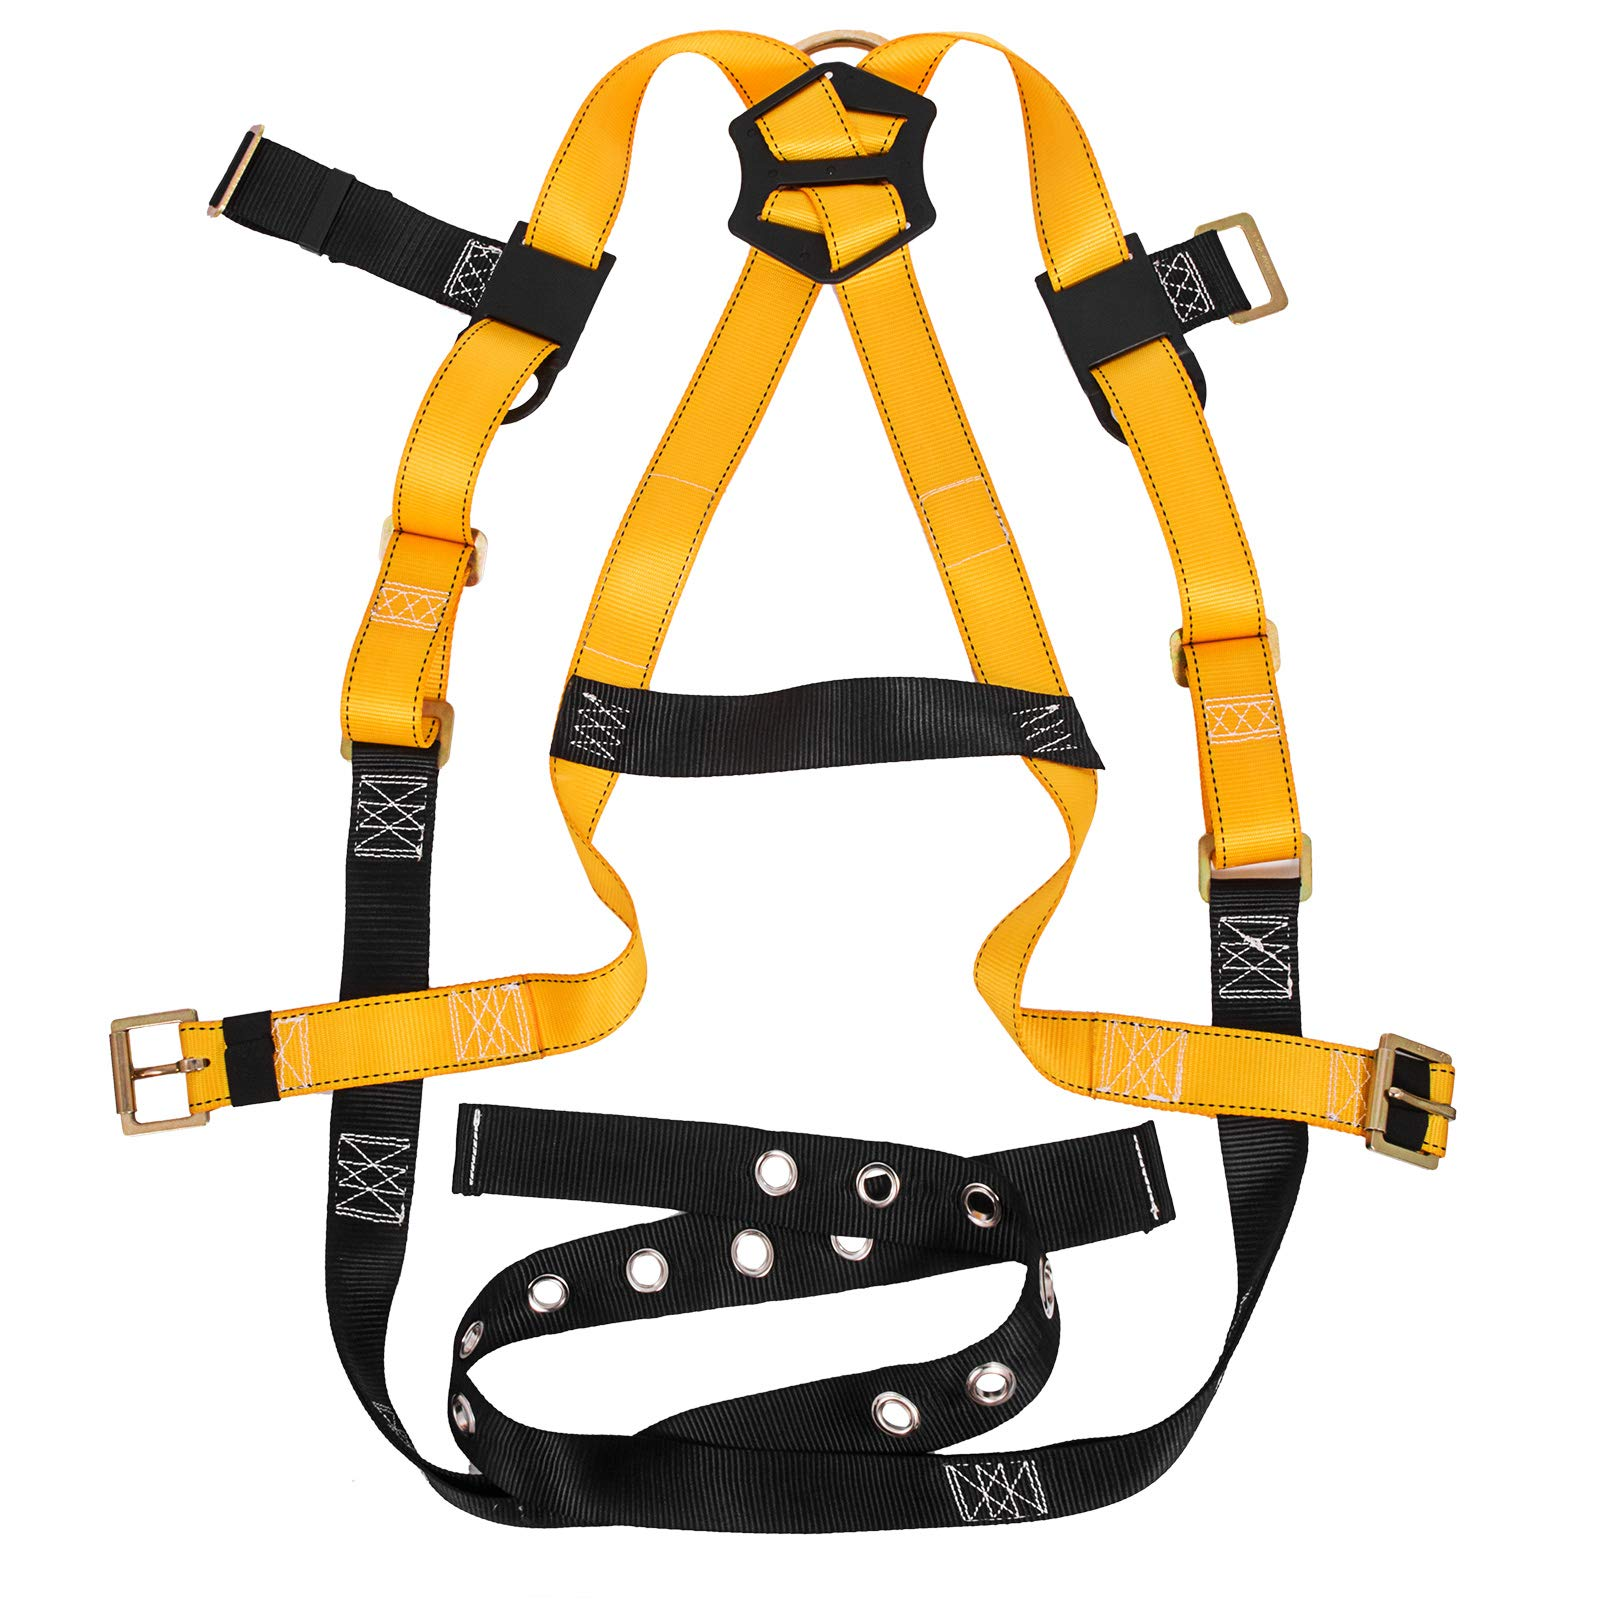 Happybuy Construction Safety Harness Fall Protection Full Body Safety Harness with 3 D-Rings,Belt and Additional Padding (Yellow with Belt) by Happybuy (Image #6)